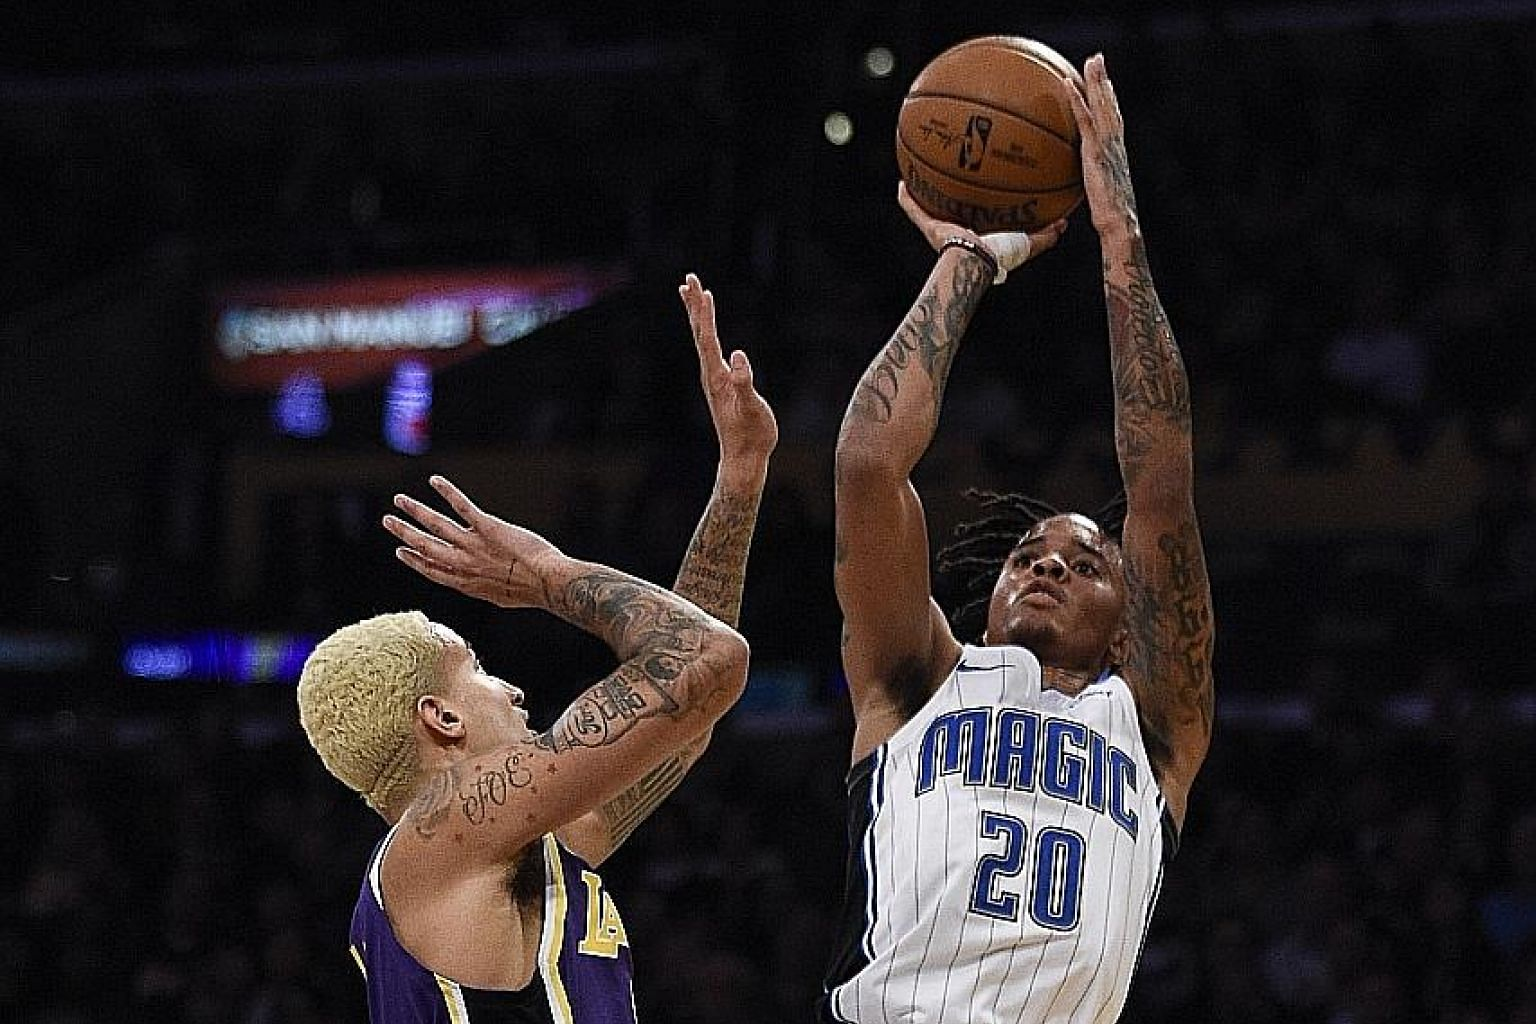 Magic guard Markelle Fultz shooting over Lakers forward Kyle Kuzma at the Staples Centre on Wednesday. The No. 1 draft pick in 2017 showed what he is capable of by finishing with 21 points, 11 rebounds and 10 assists. PHOTO: REUTERS